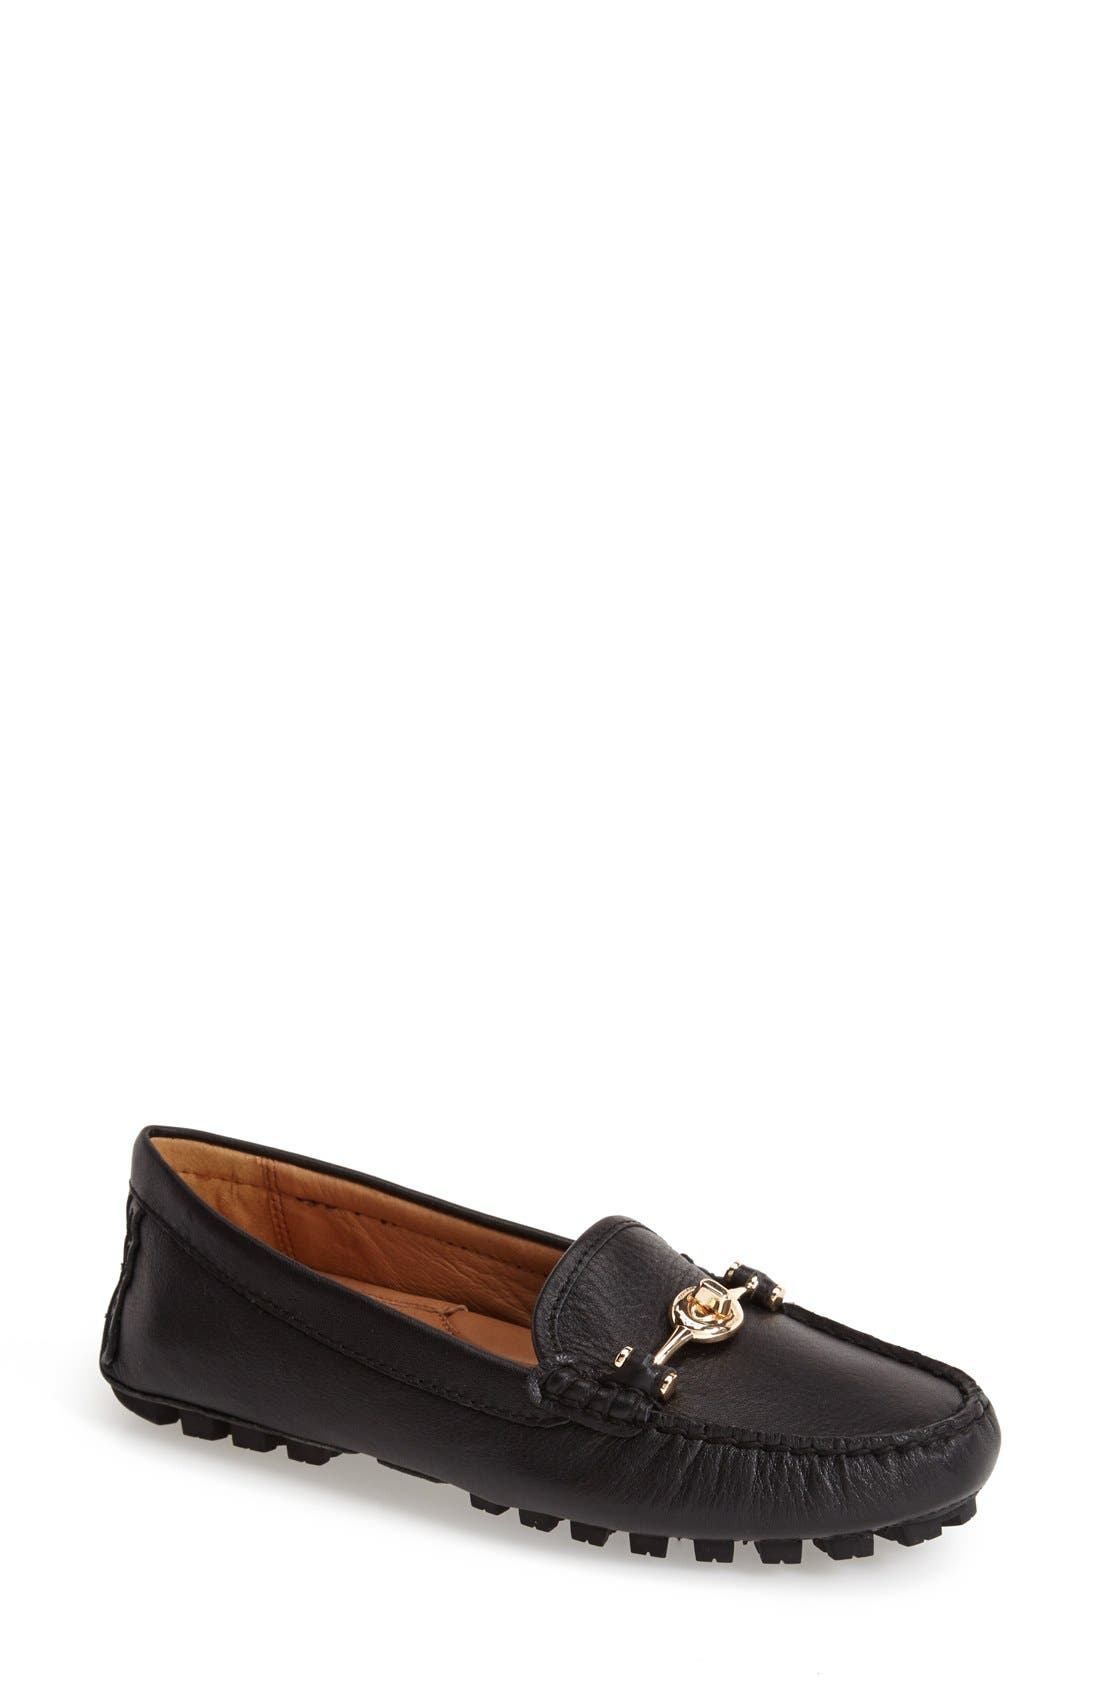 Main Image - COACH 'Arlene' Loafer (Women)